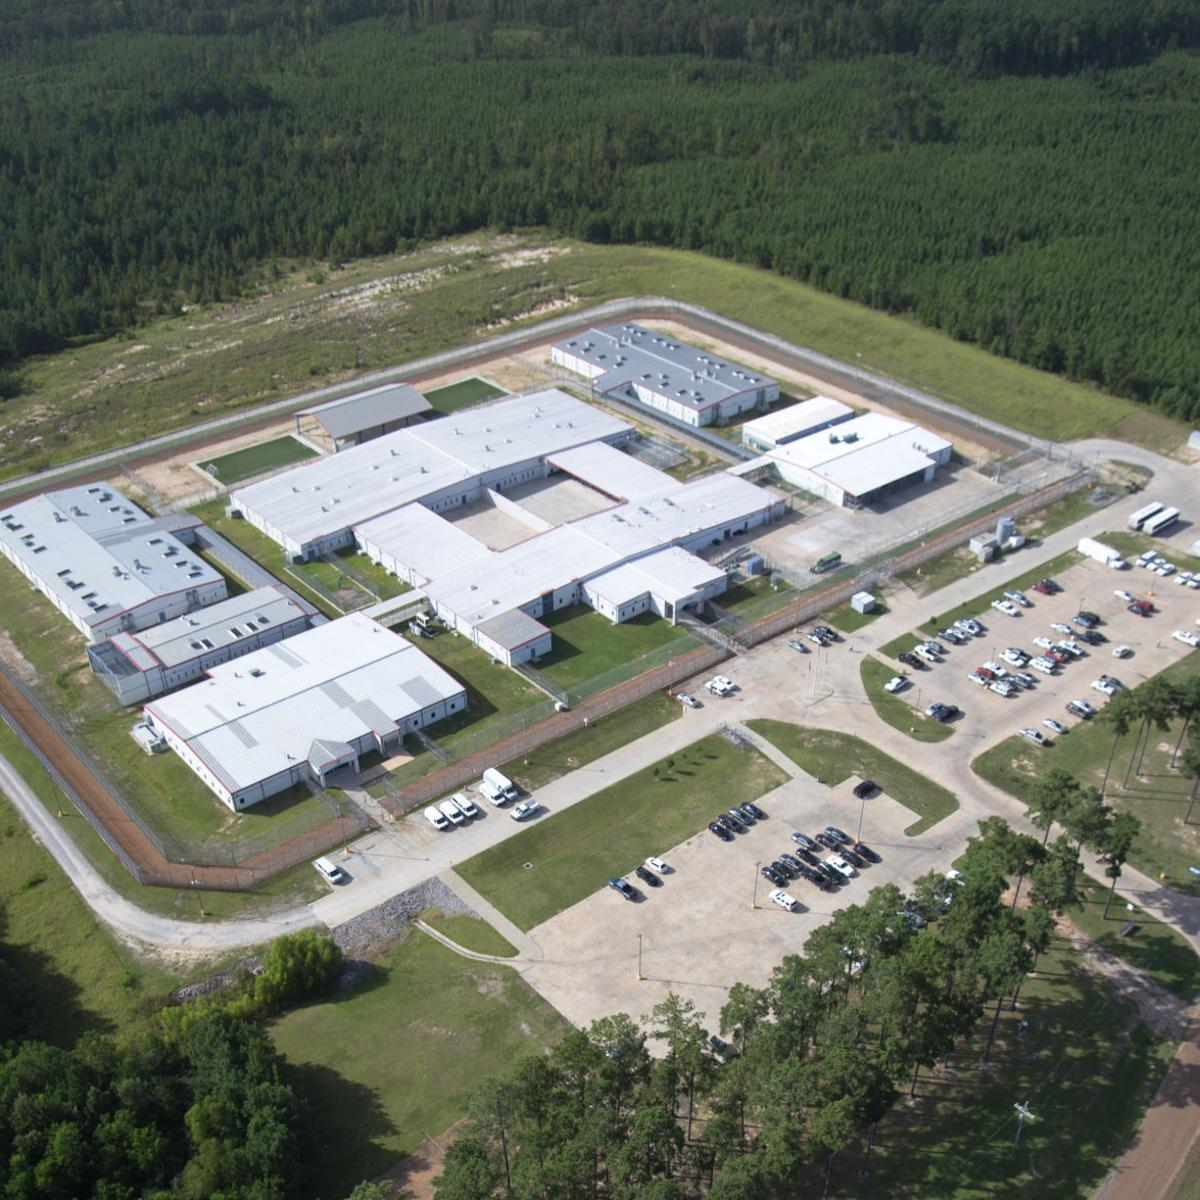 Louisiana's prisons are increasingly being used to detain